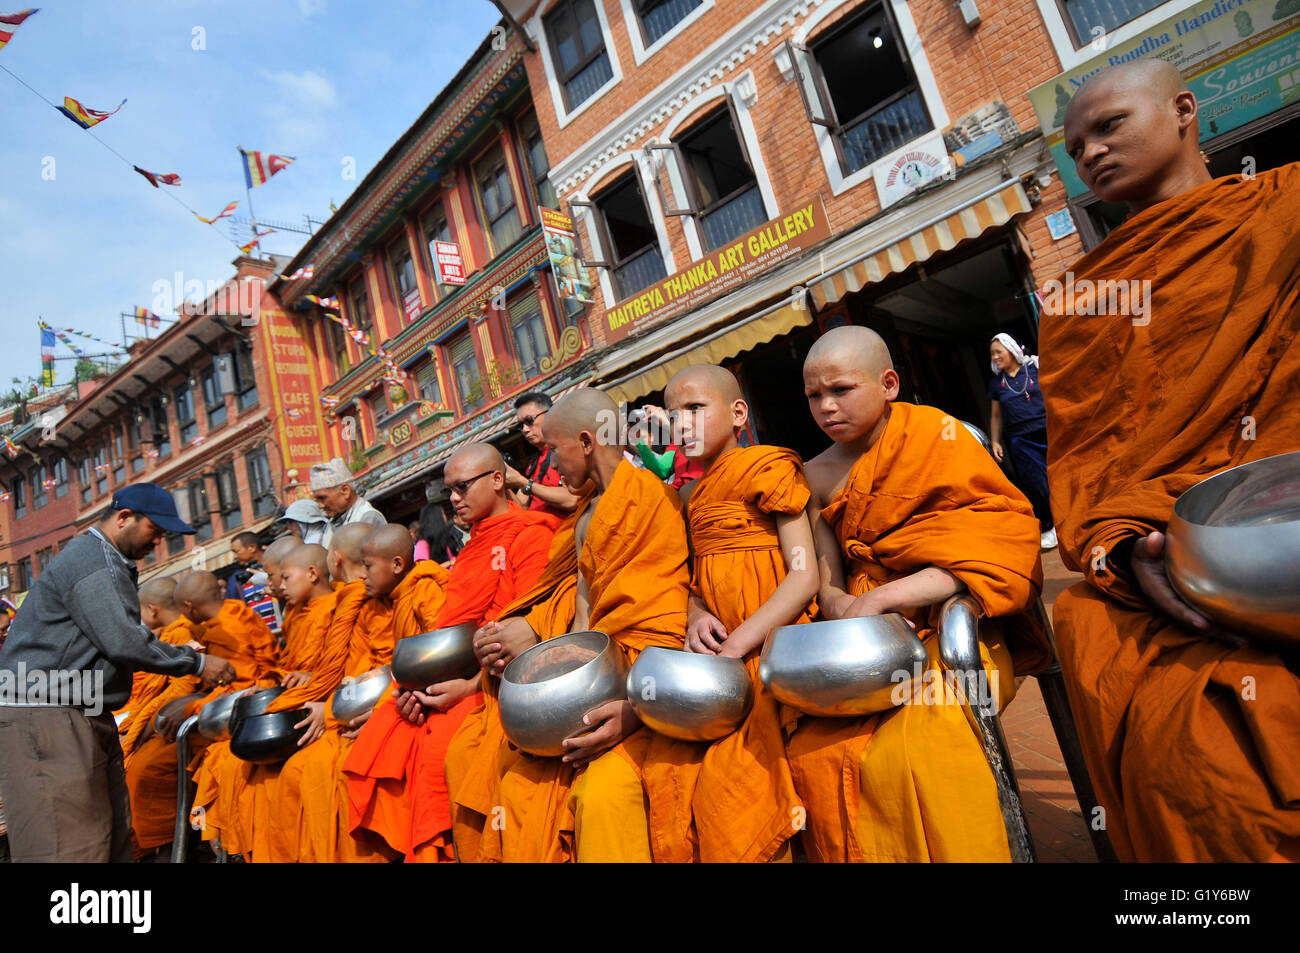 Devotees offering holy grains and money to Buddhist monks at